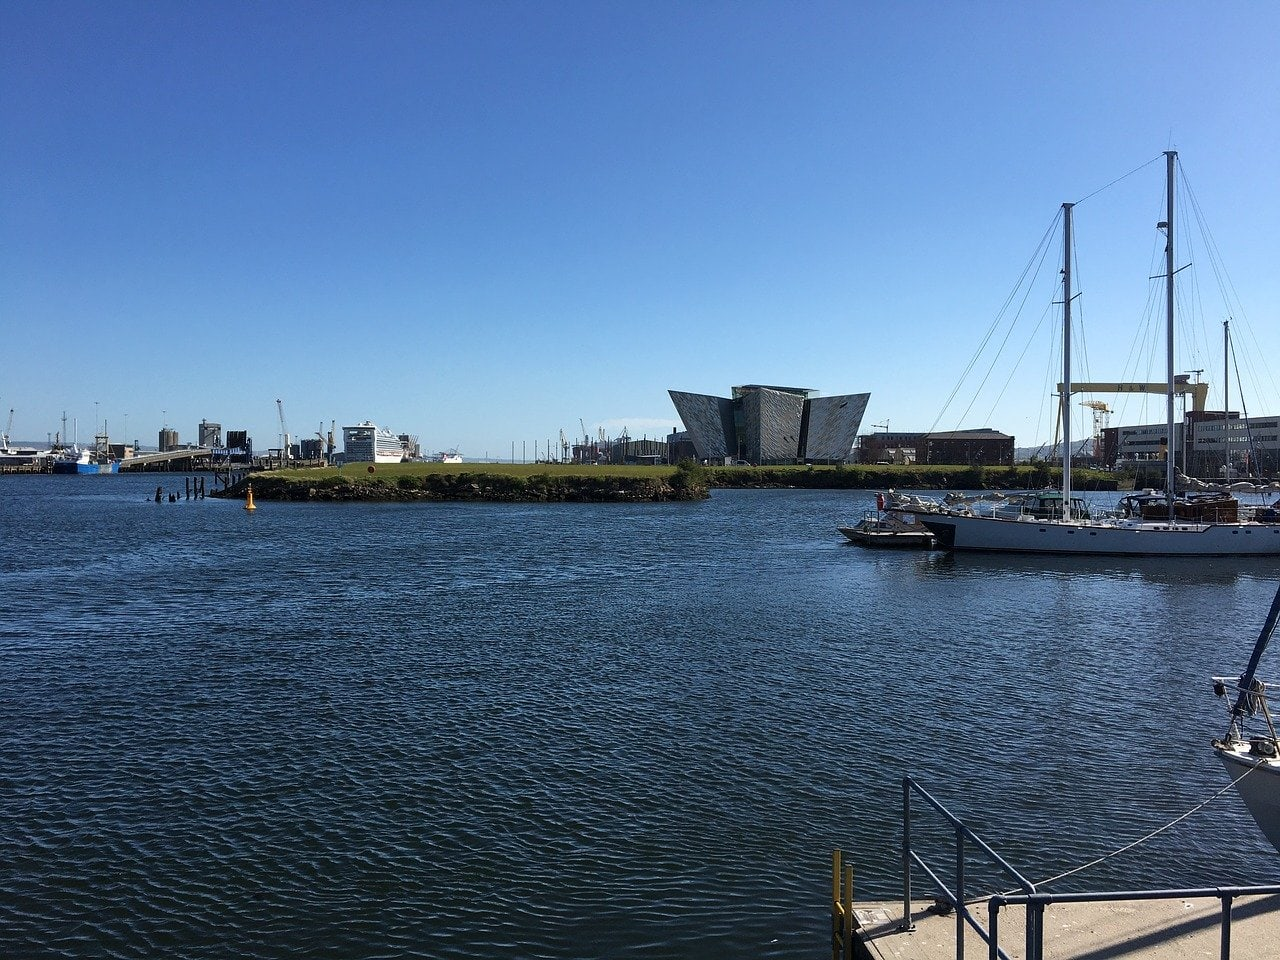 The Titanic Quarter in Belfast, showing the waterfront and the Titanic Museum